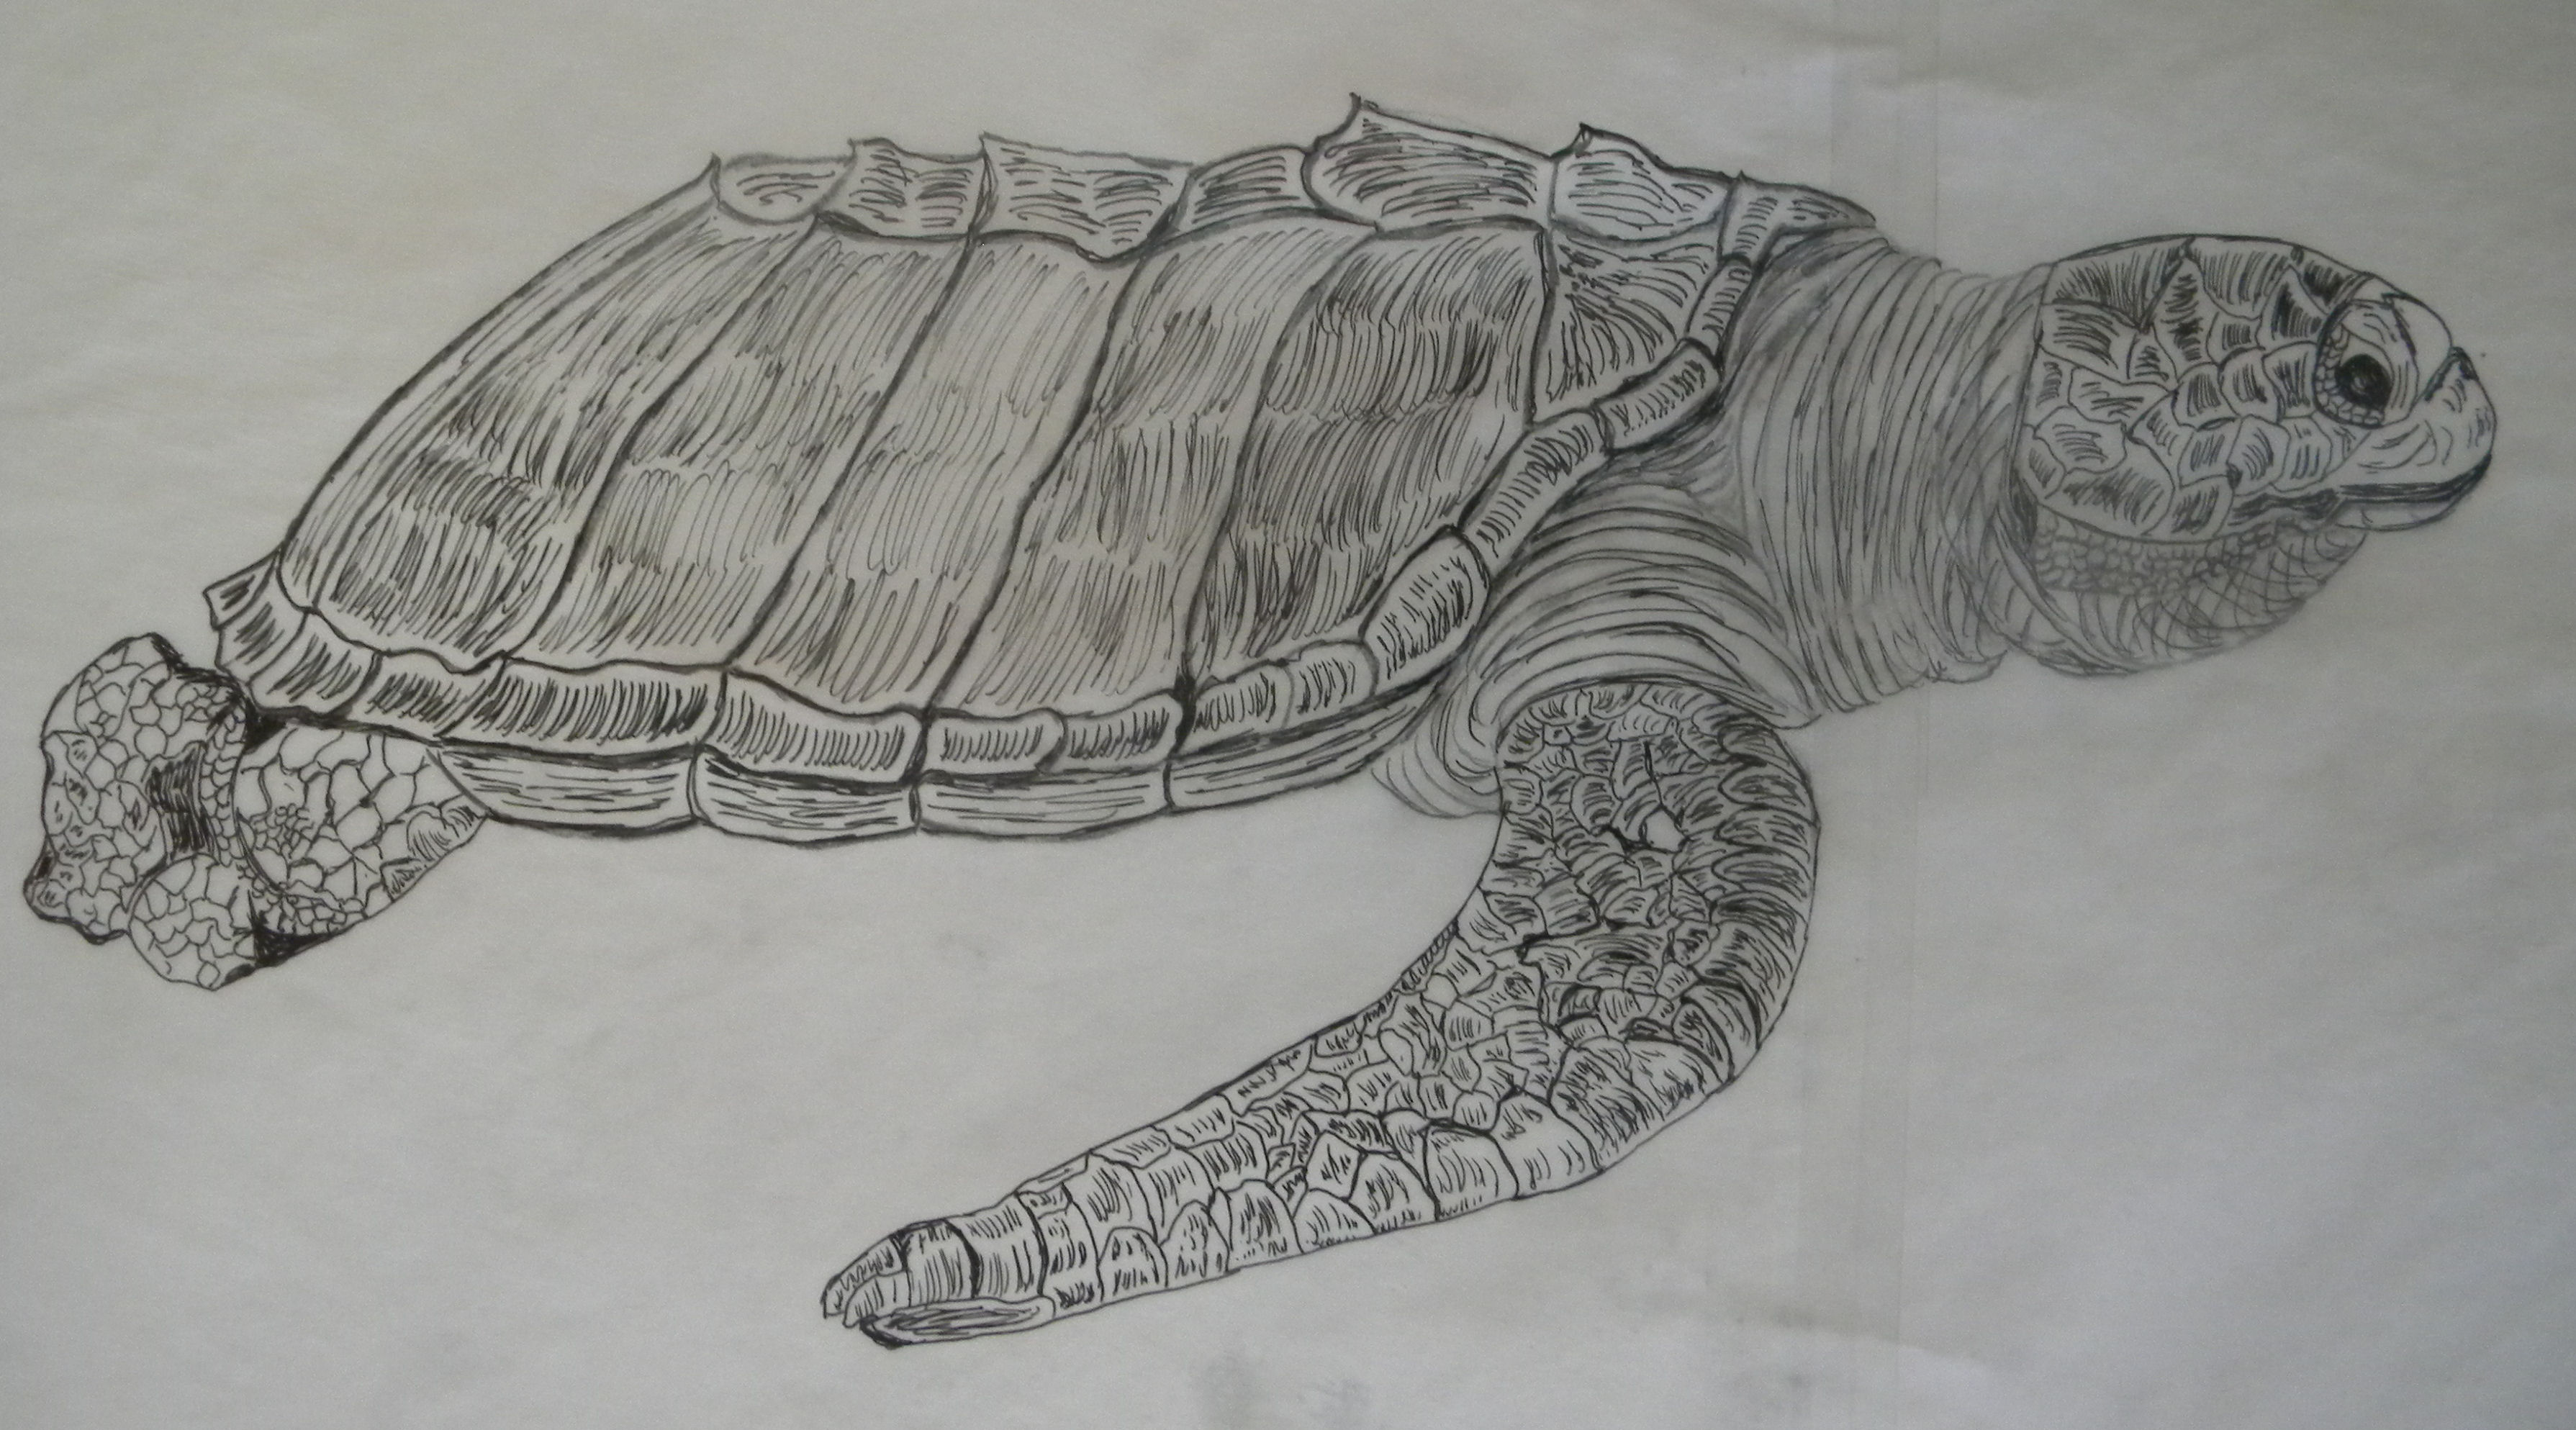 Olive Ridley Sea Turtle Drawings Pencil and Pen Patsys